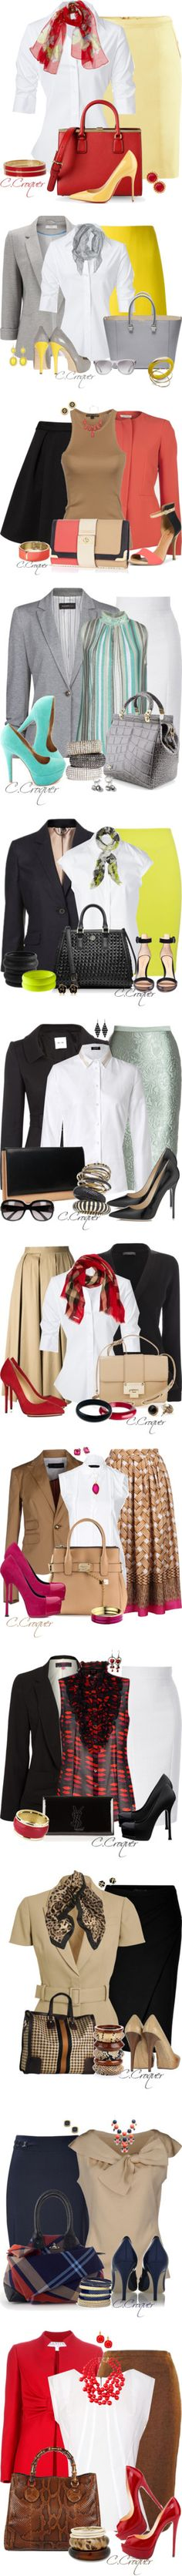 Skirt Work Outfit by ccroquer on Polyvore featuring мода, H&M, Chanel, Steffen Schraut, Dolce&Gabbana, Kate Spade, P.A.R.O.S.H., Wallis, Brian Atwood and Victoria Beckham